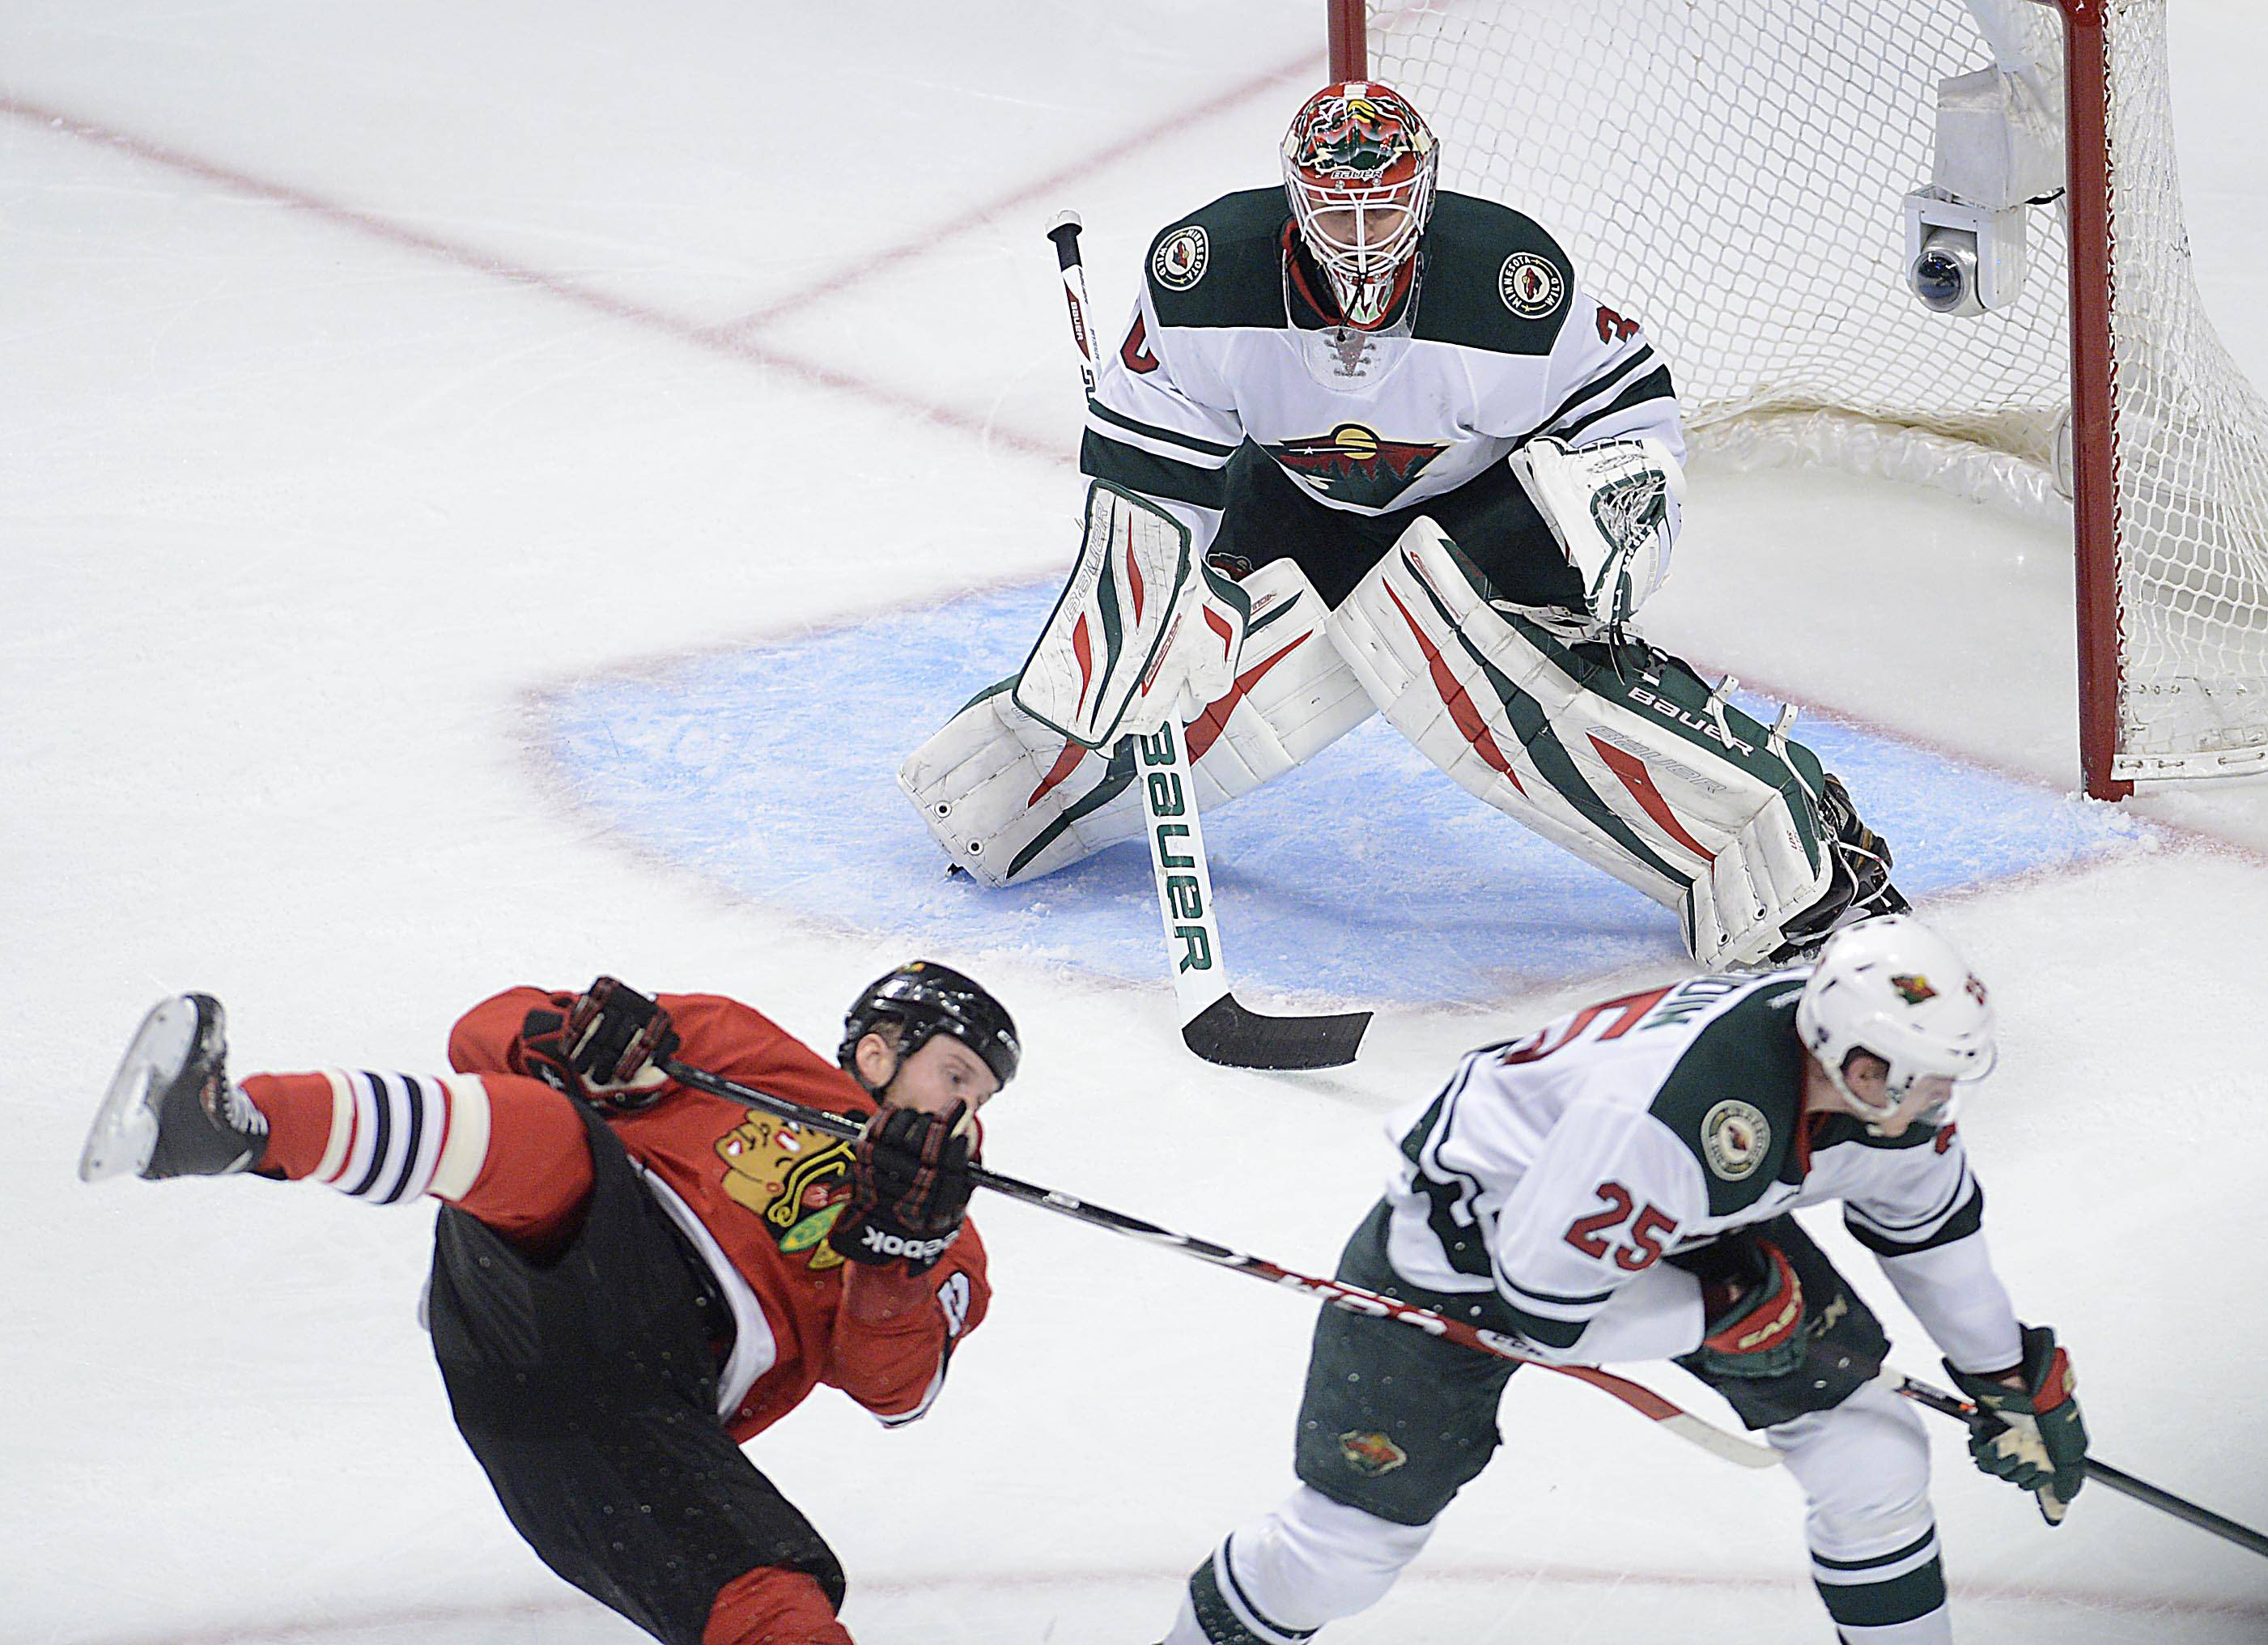 Chicago Blackhawks left wing Bryan Bickell is knocked off his skates by Minnesota Wild defenseman Jonas Brodin.